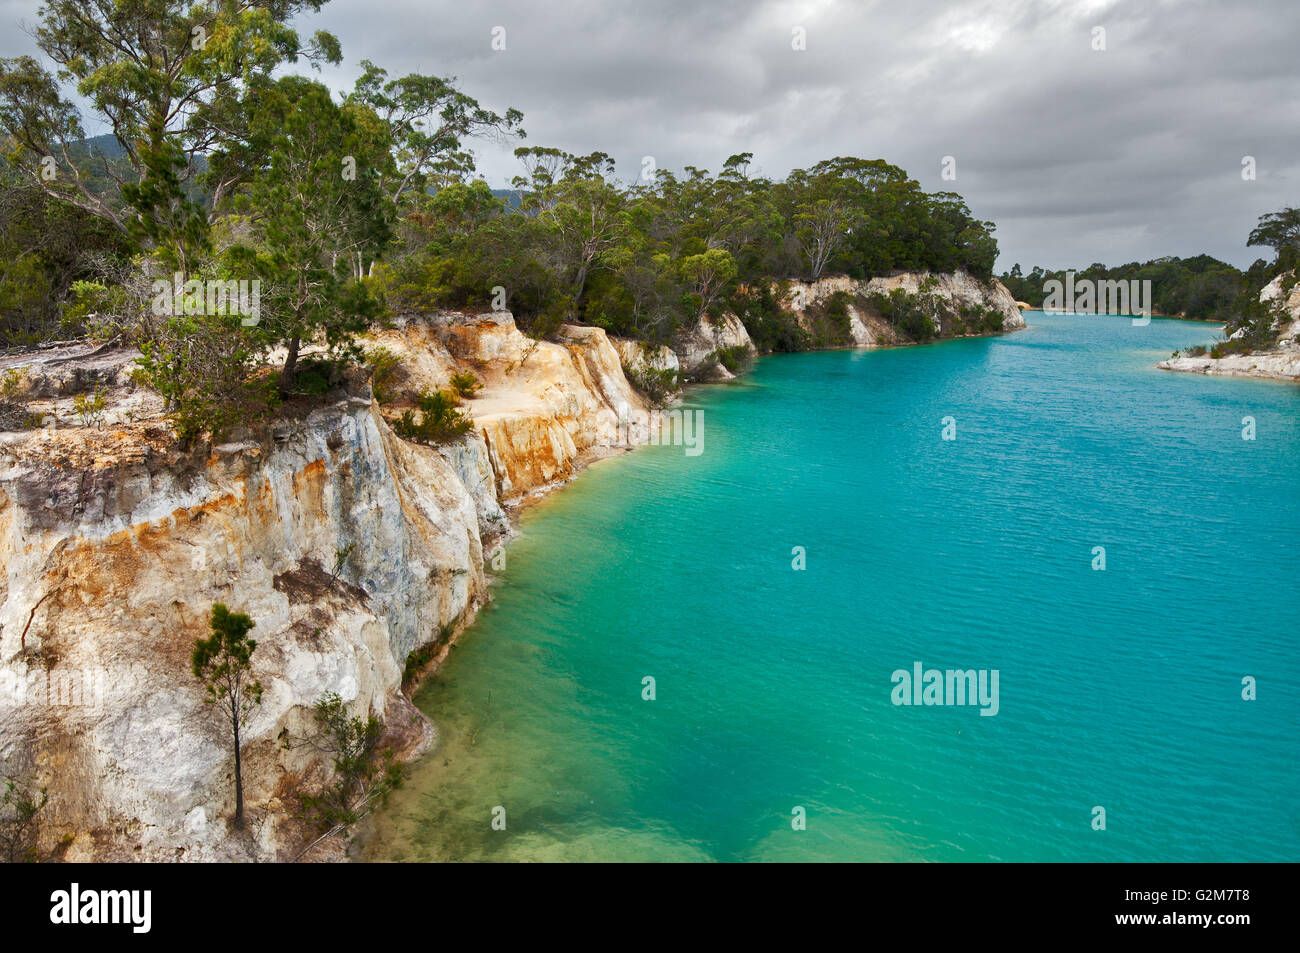 Deep blue colour in Little Blue Lake, caused by minerals of the former mine. - Stock Image